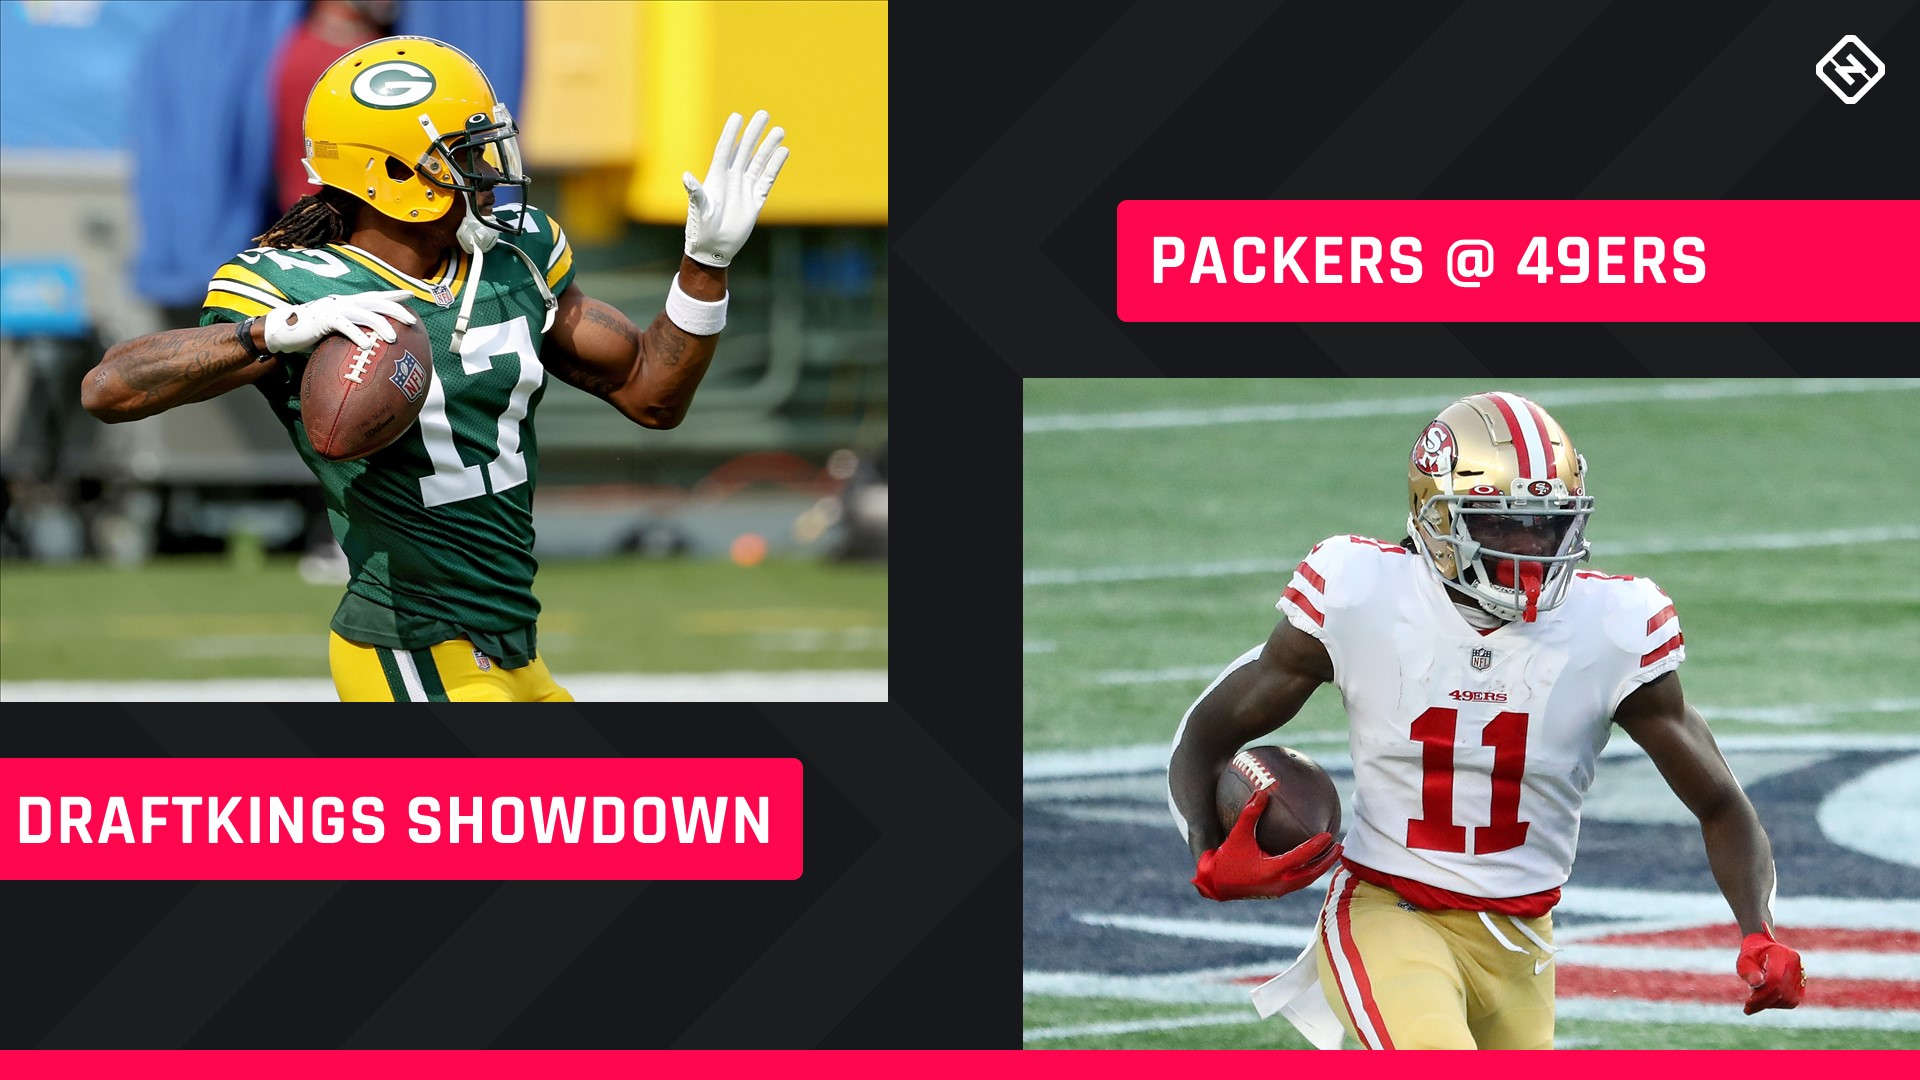 Thursday Night Football DraftKings Picks: NFL DFS lineup advice for Week 9 Packers-49ers Showdown tournaments